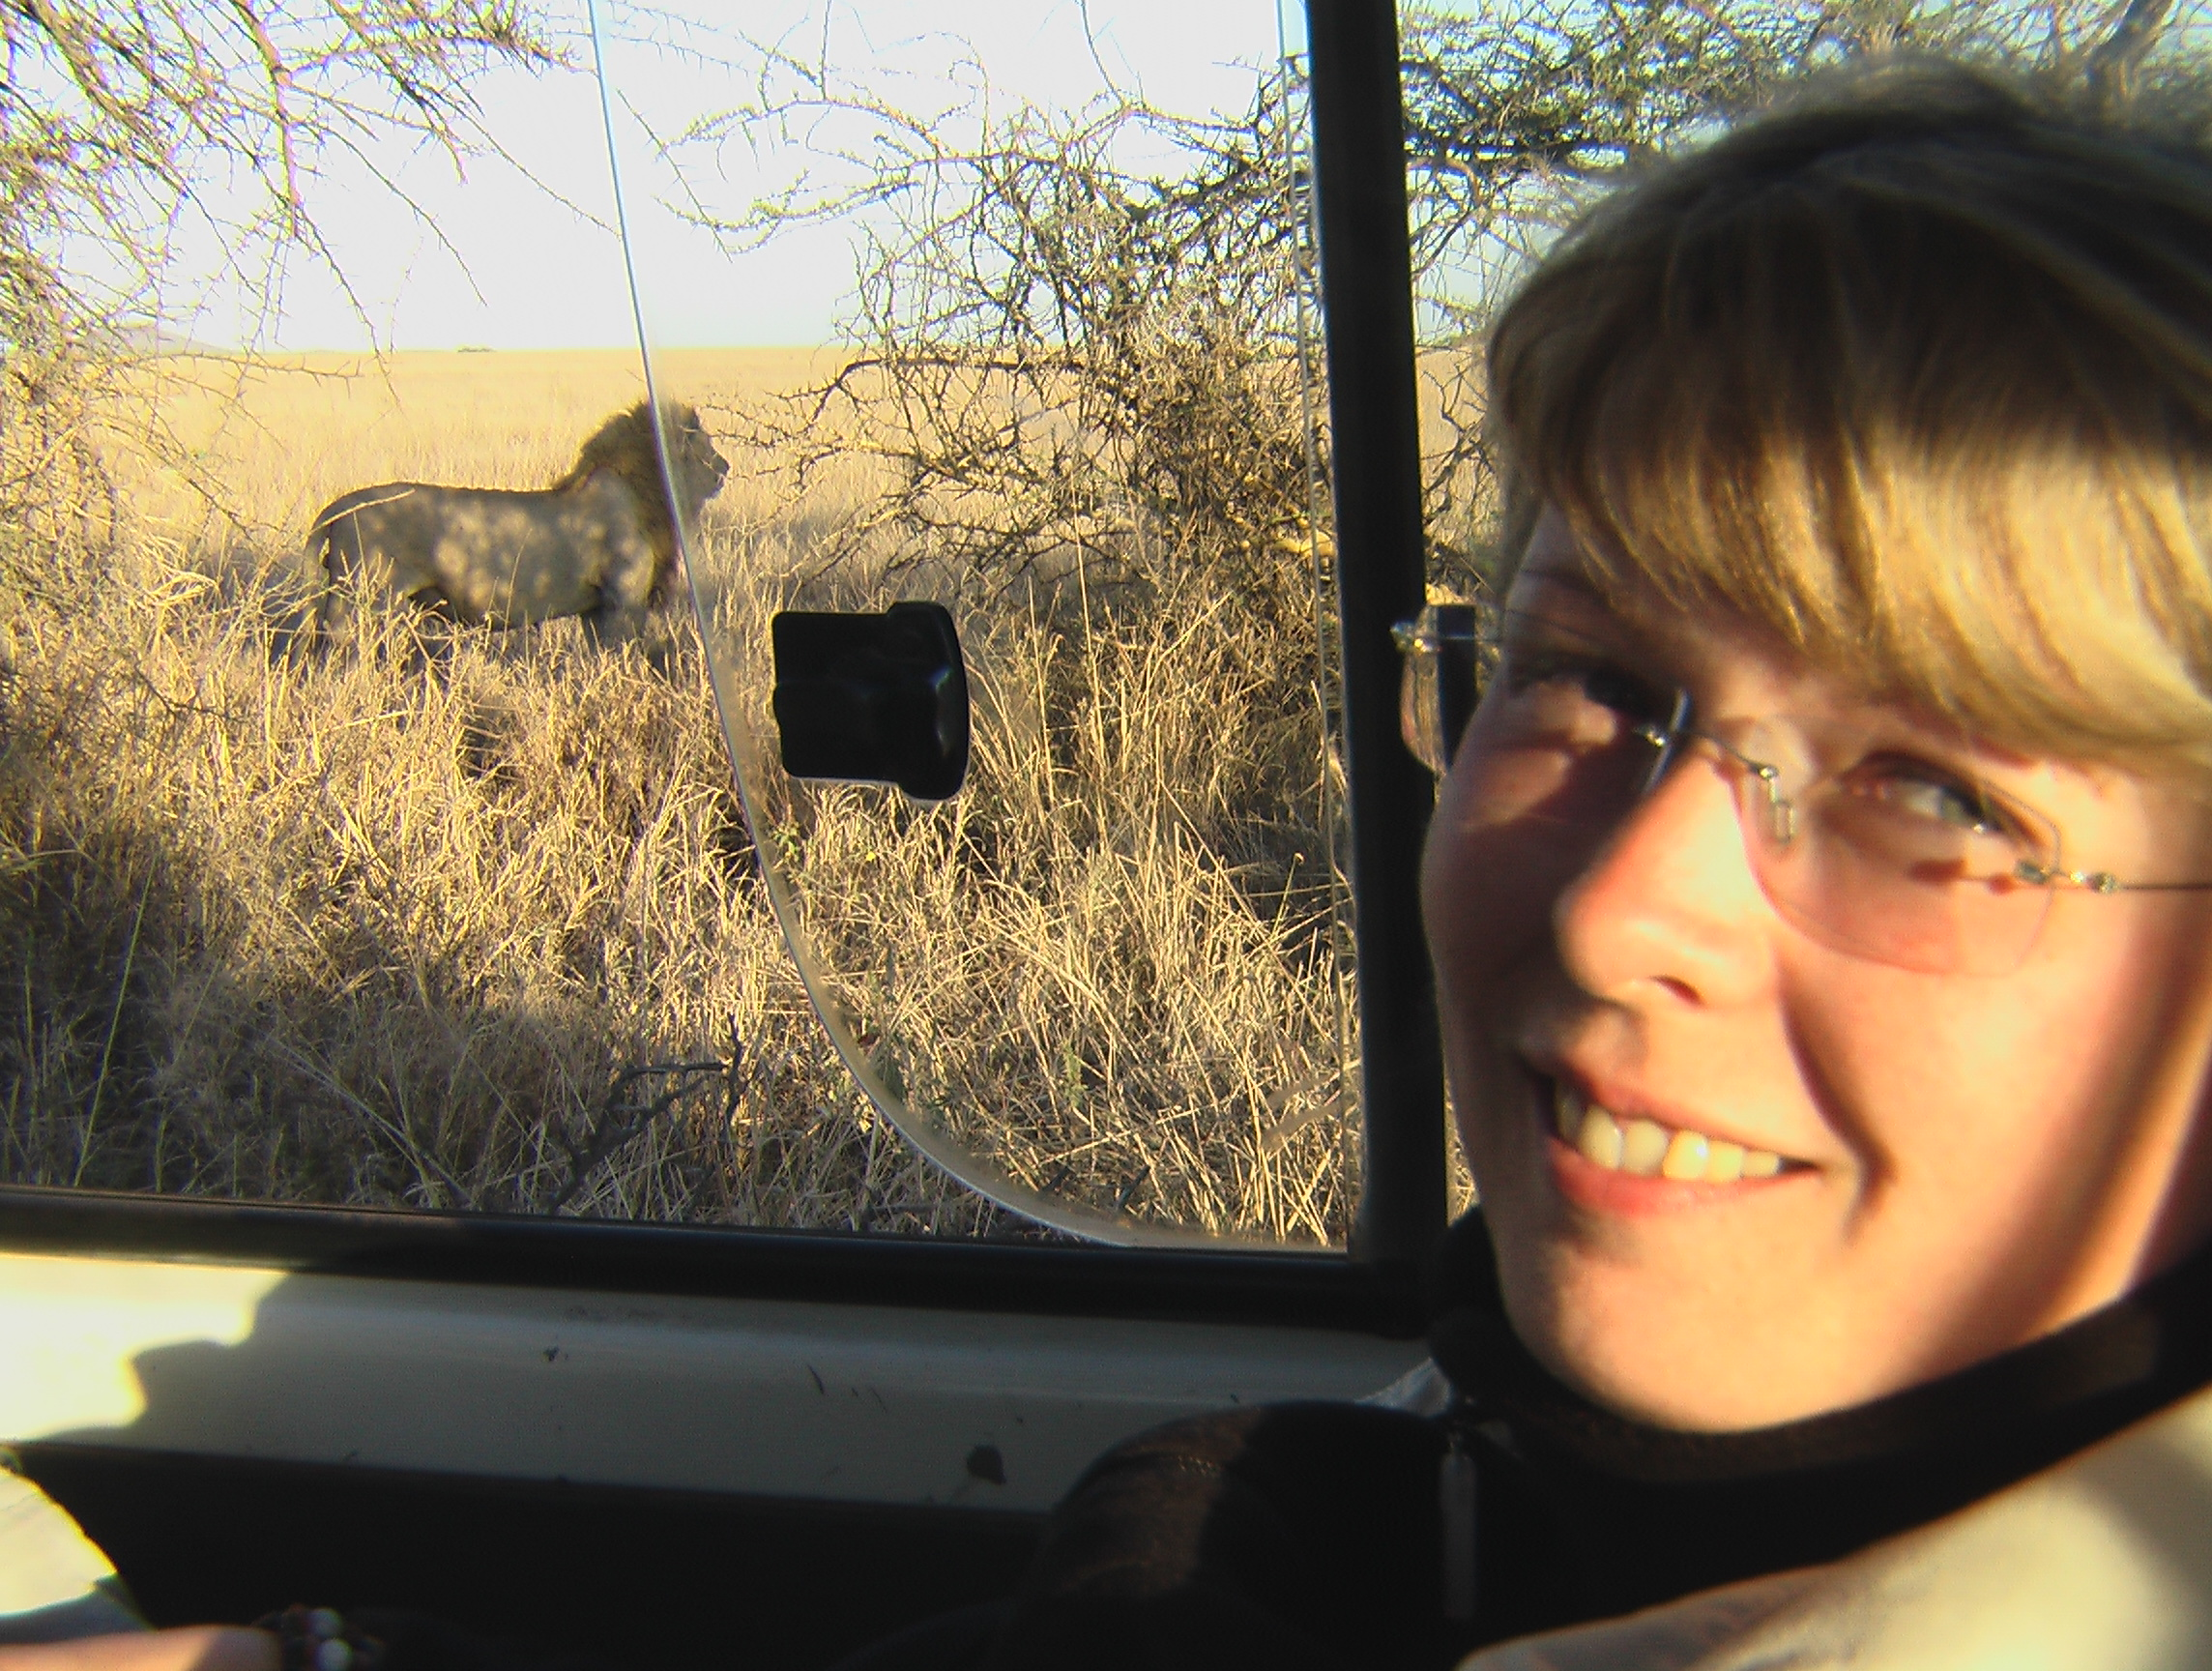 Photo from our Clients on Safari